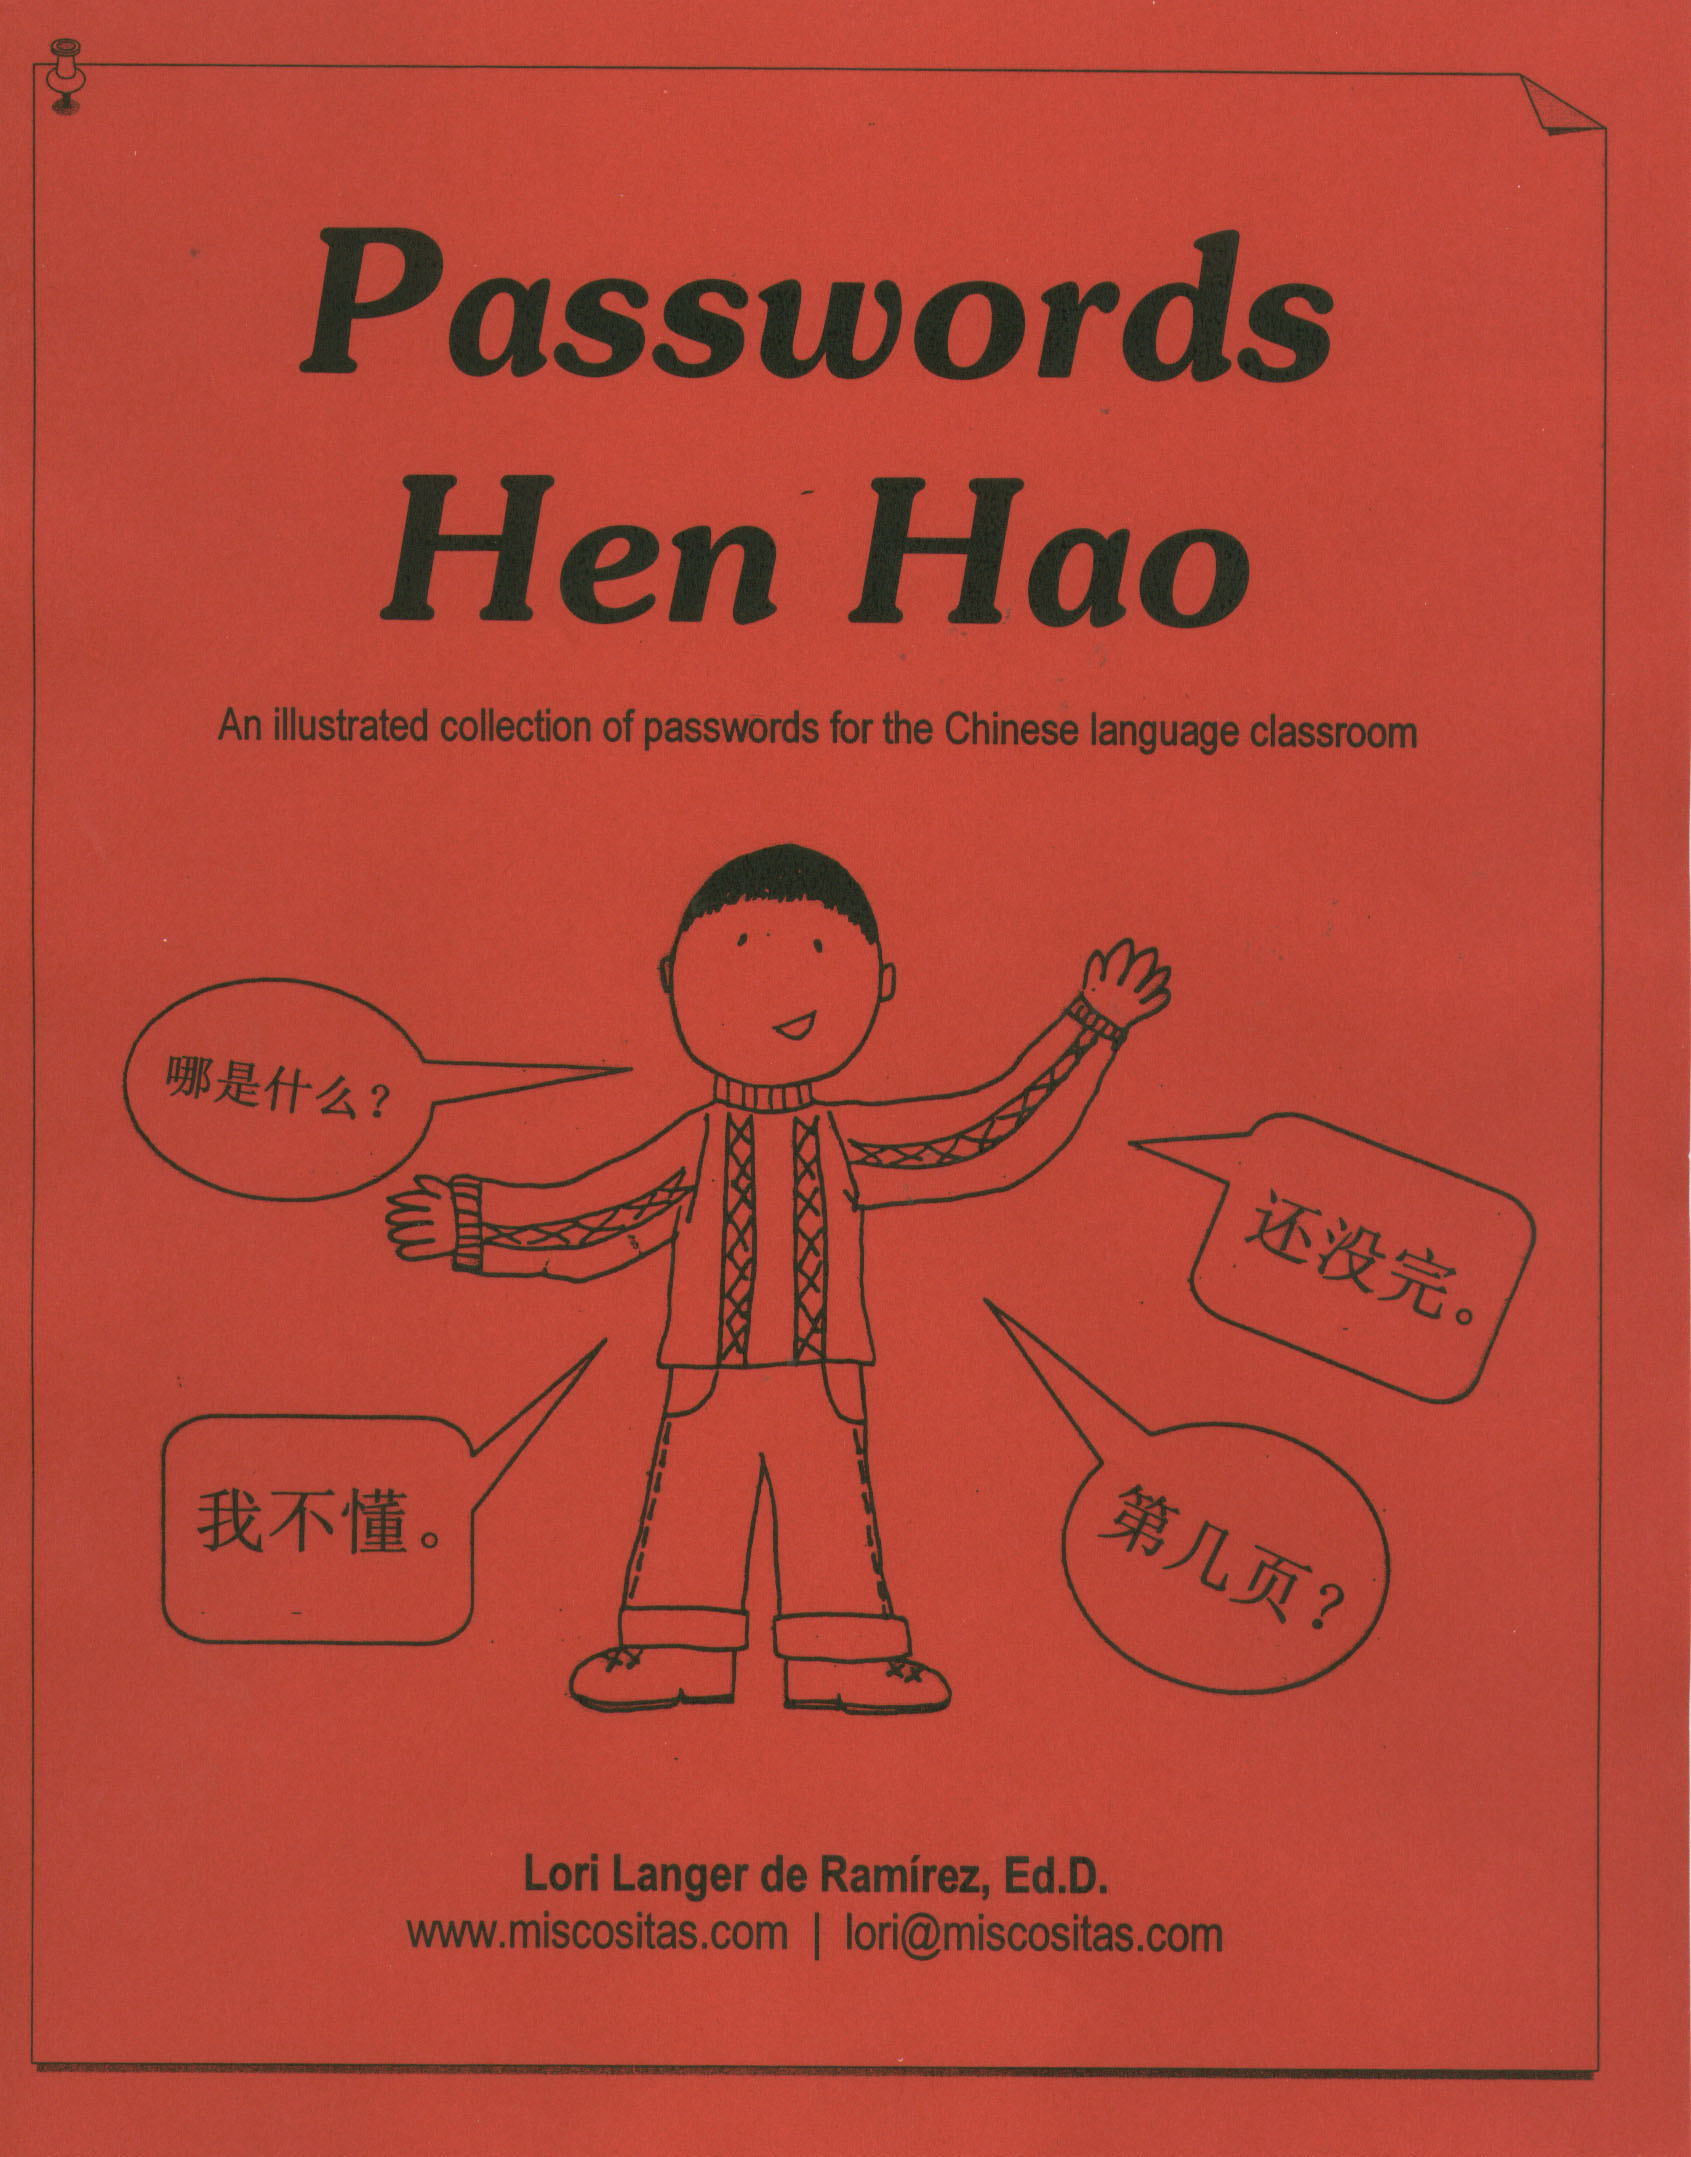 Passwords Hen Hao